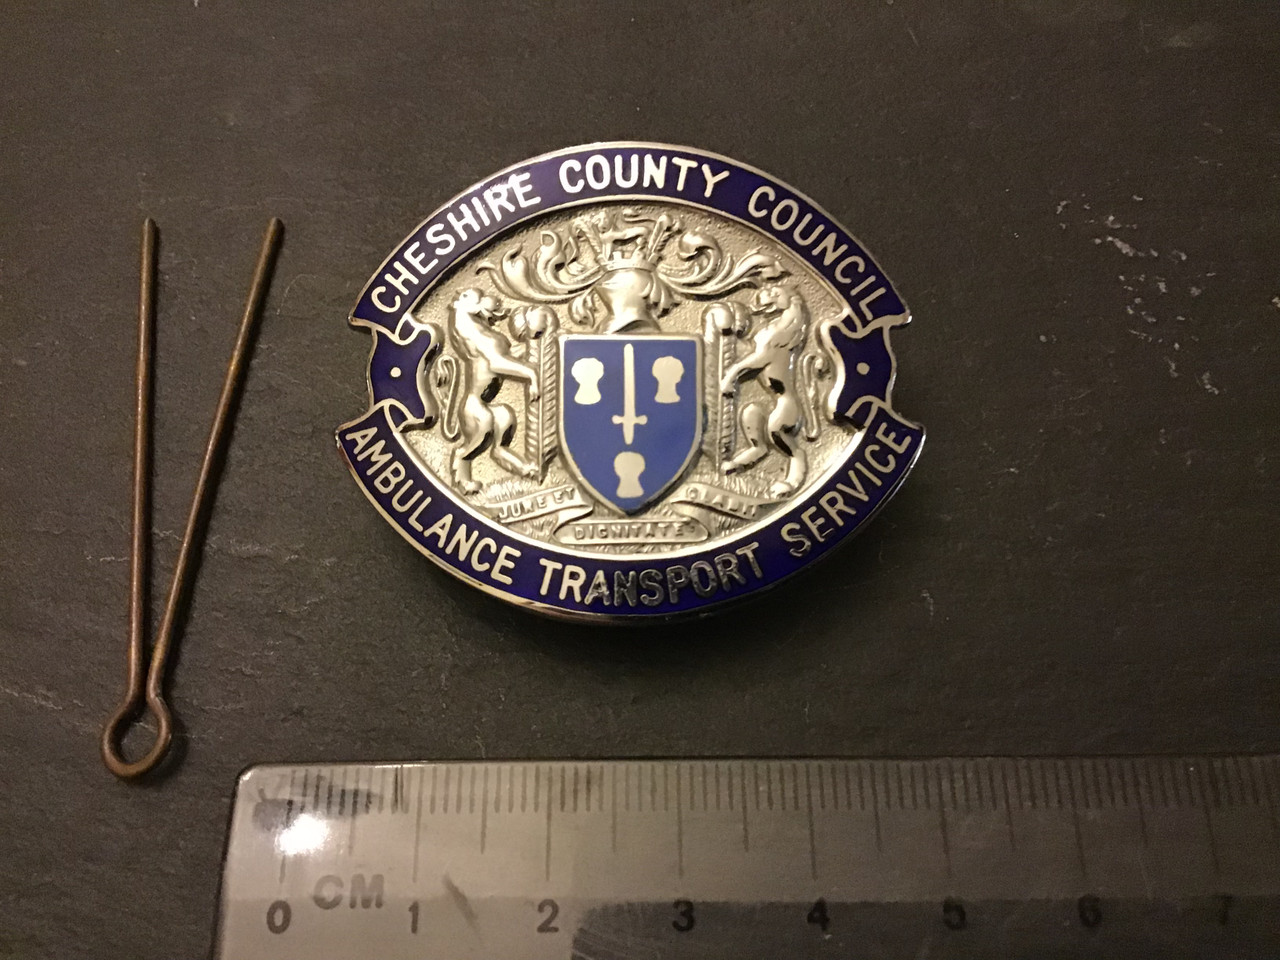 GD 551 Cheshire County Council Ambulance Transport Service Cap Badge